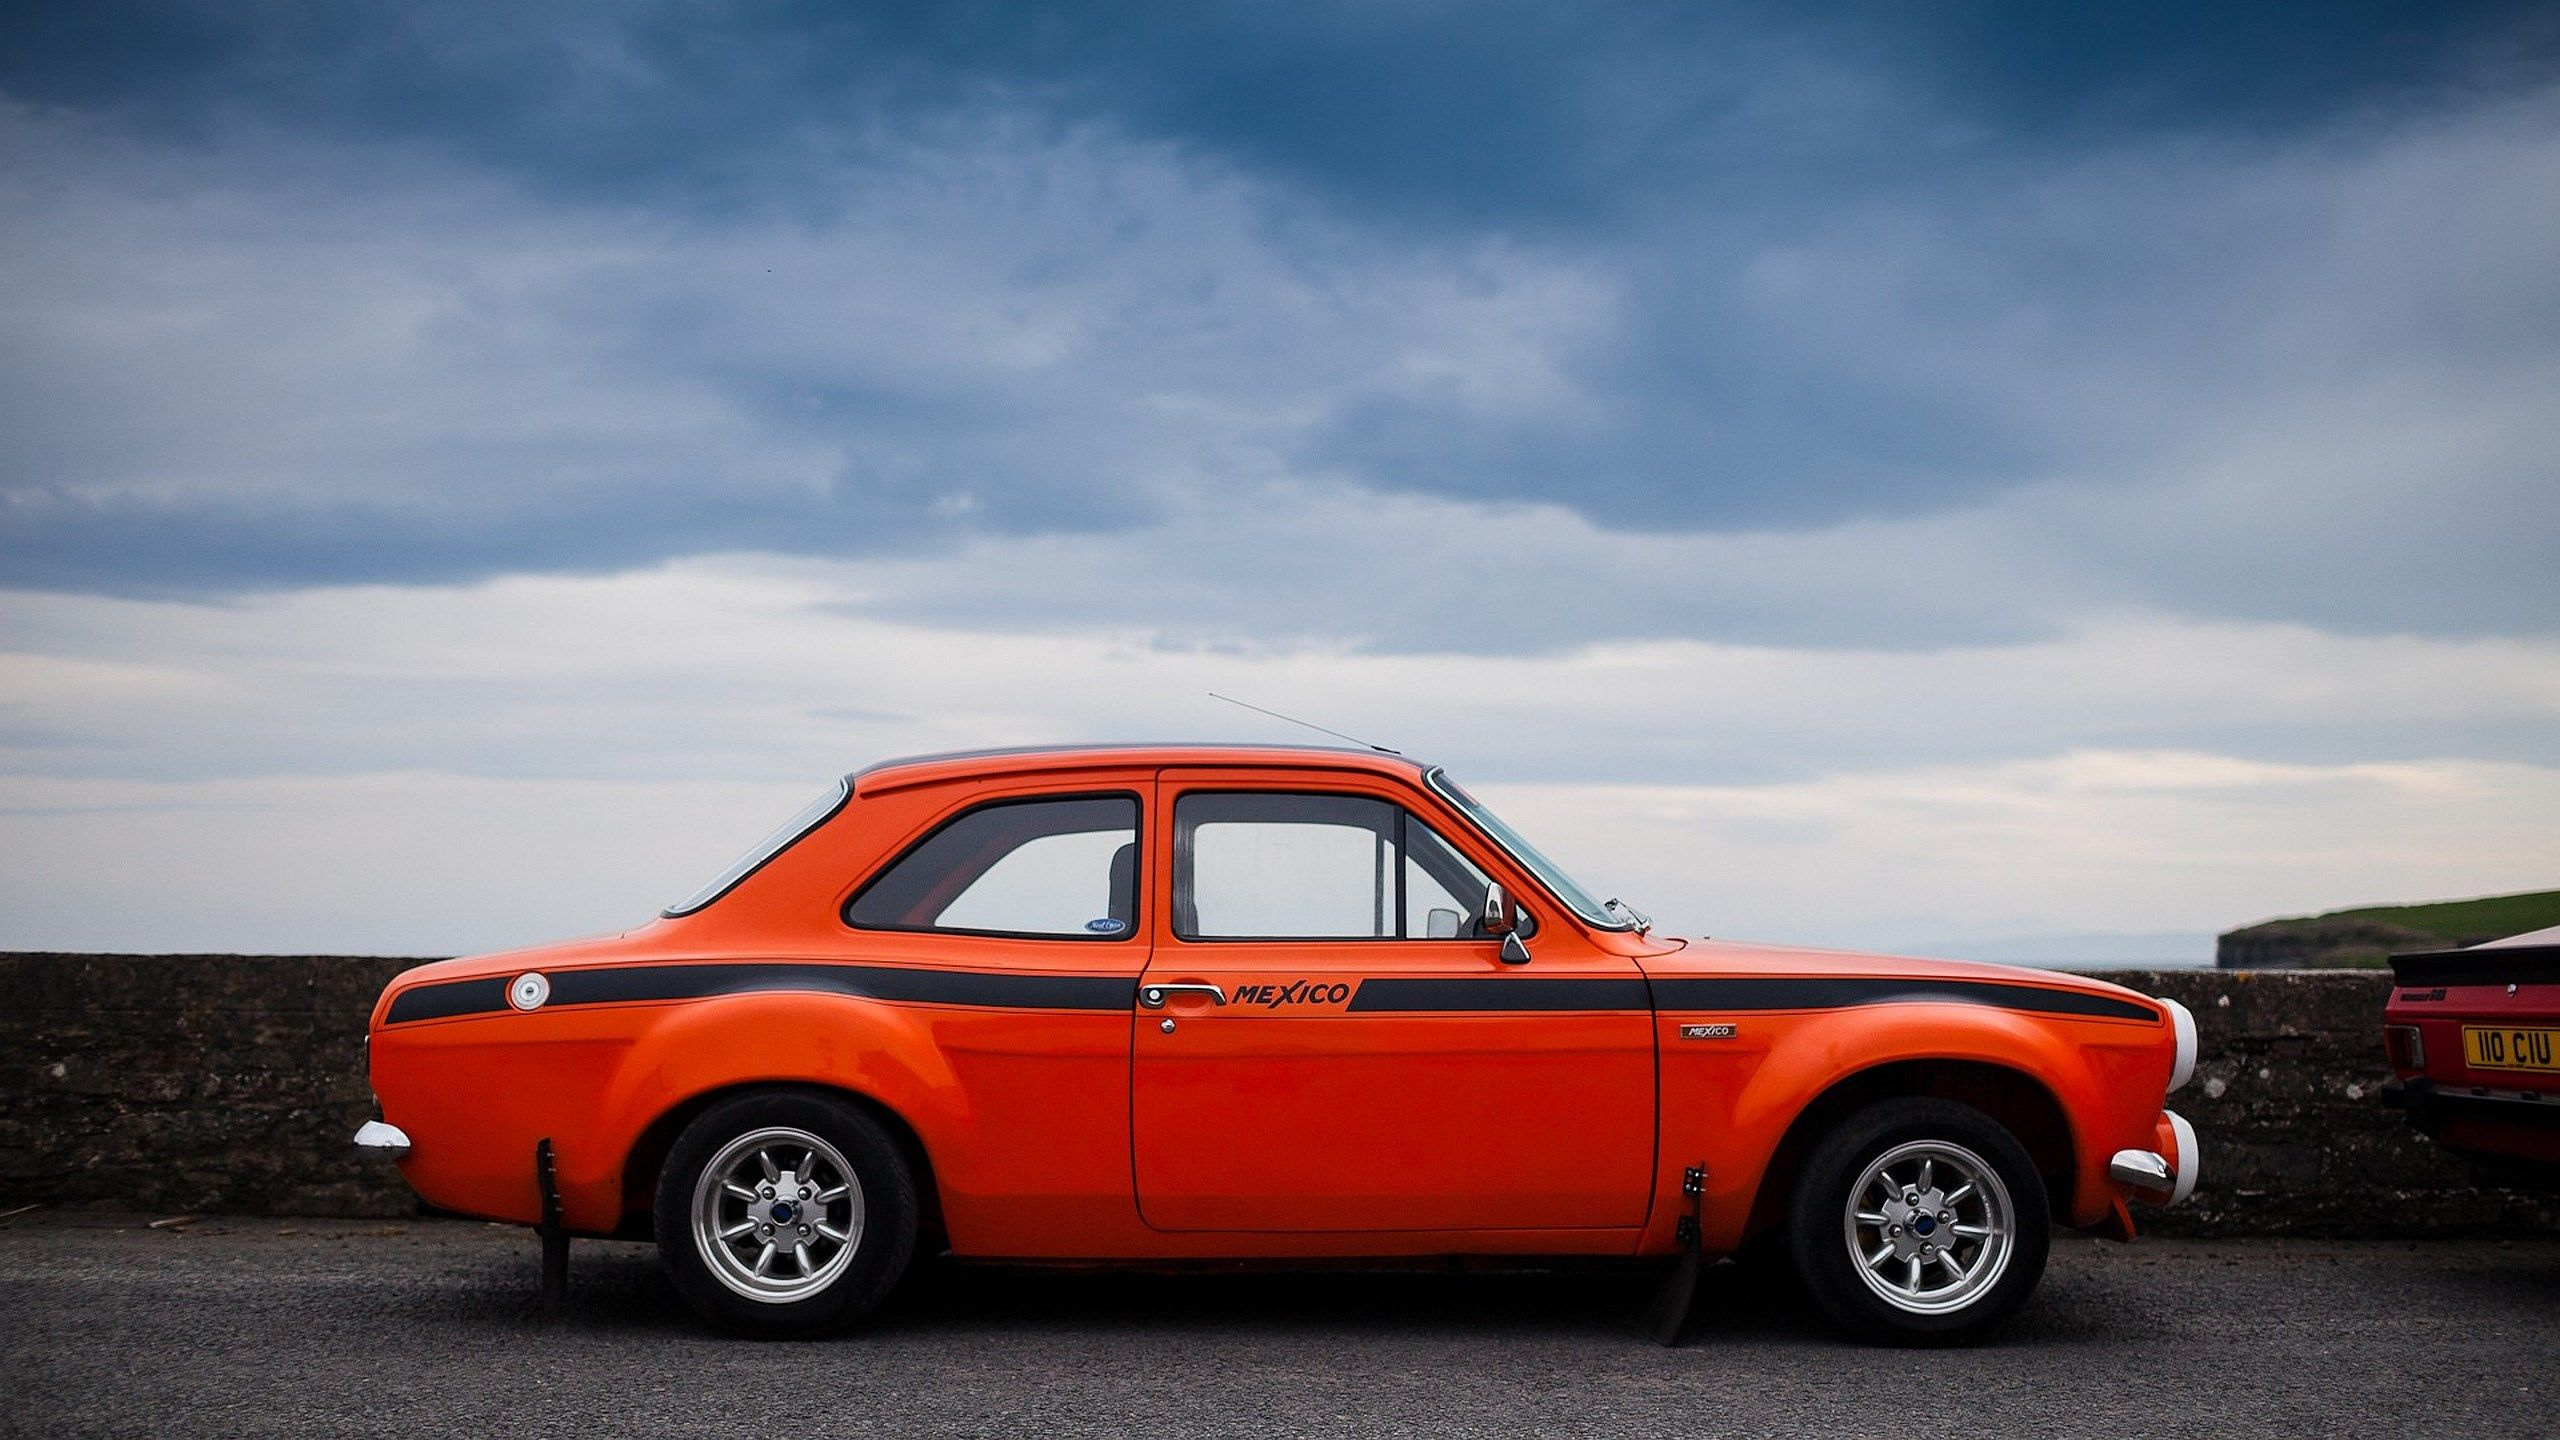 ford escort pic for desktops - ford escort category | gogolmogol ...